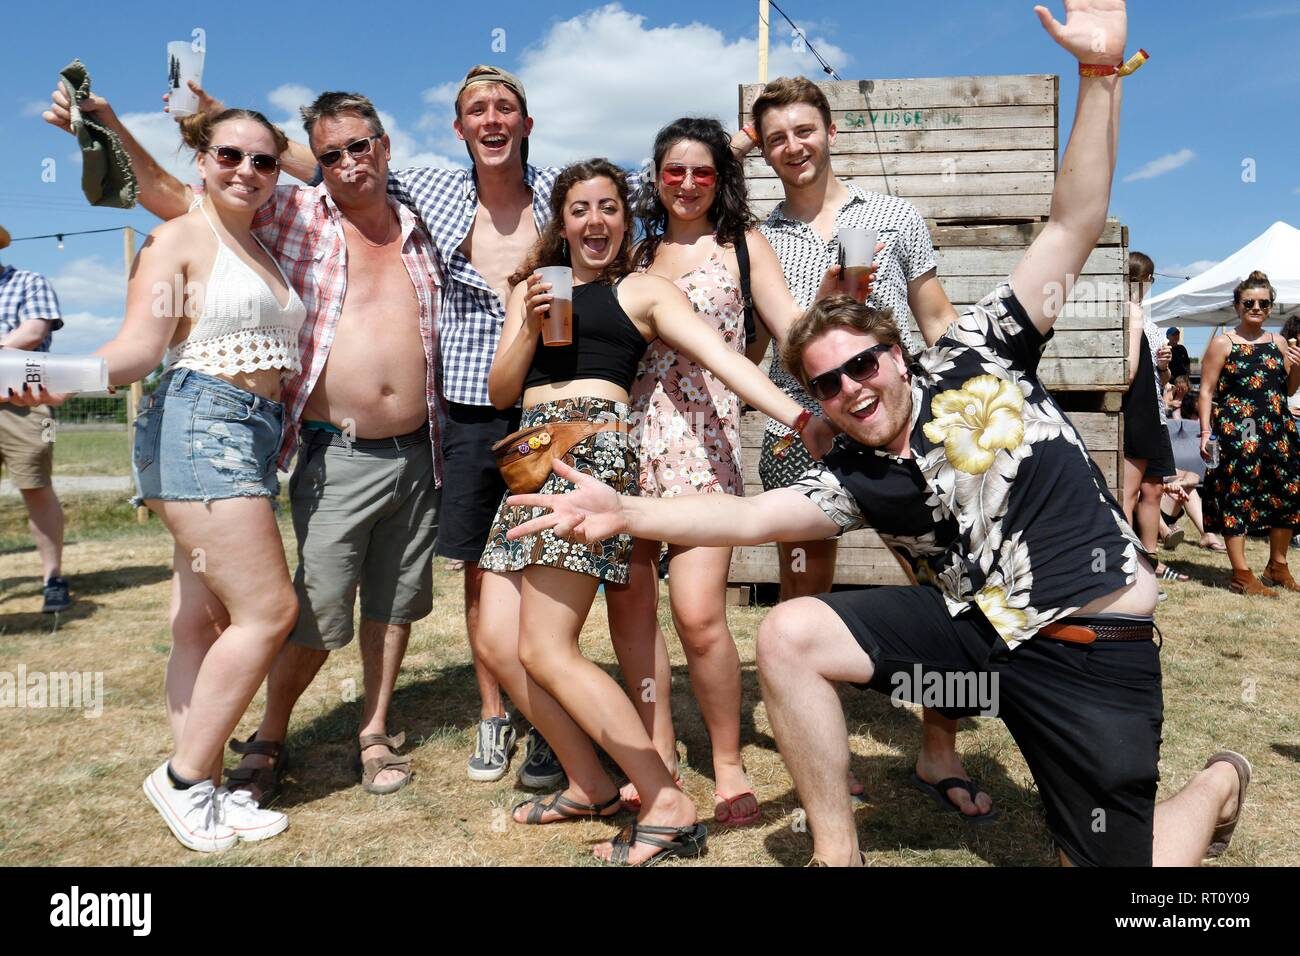 Good times at the Barn On The Farm festival, at Over Farm, near Gloucester, this weekend.  7th July 2018  Picture by Andrew Higgins - Thousand Word Me - Stock Image